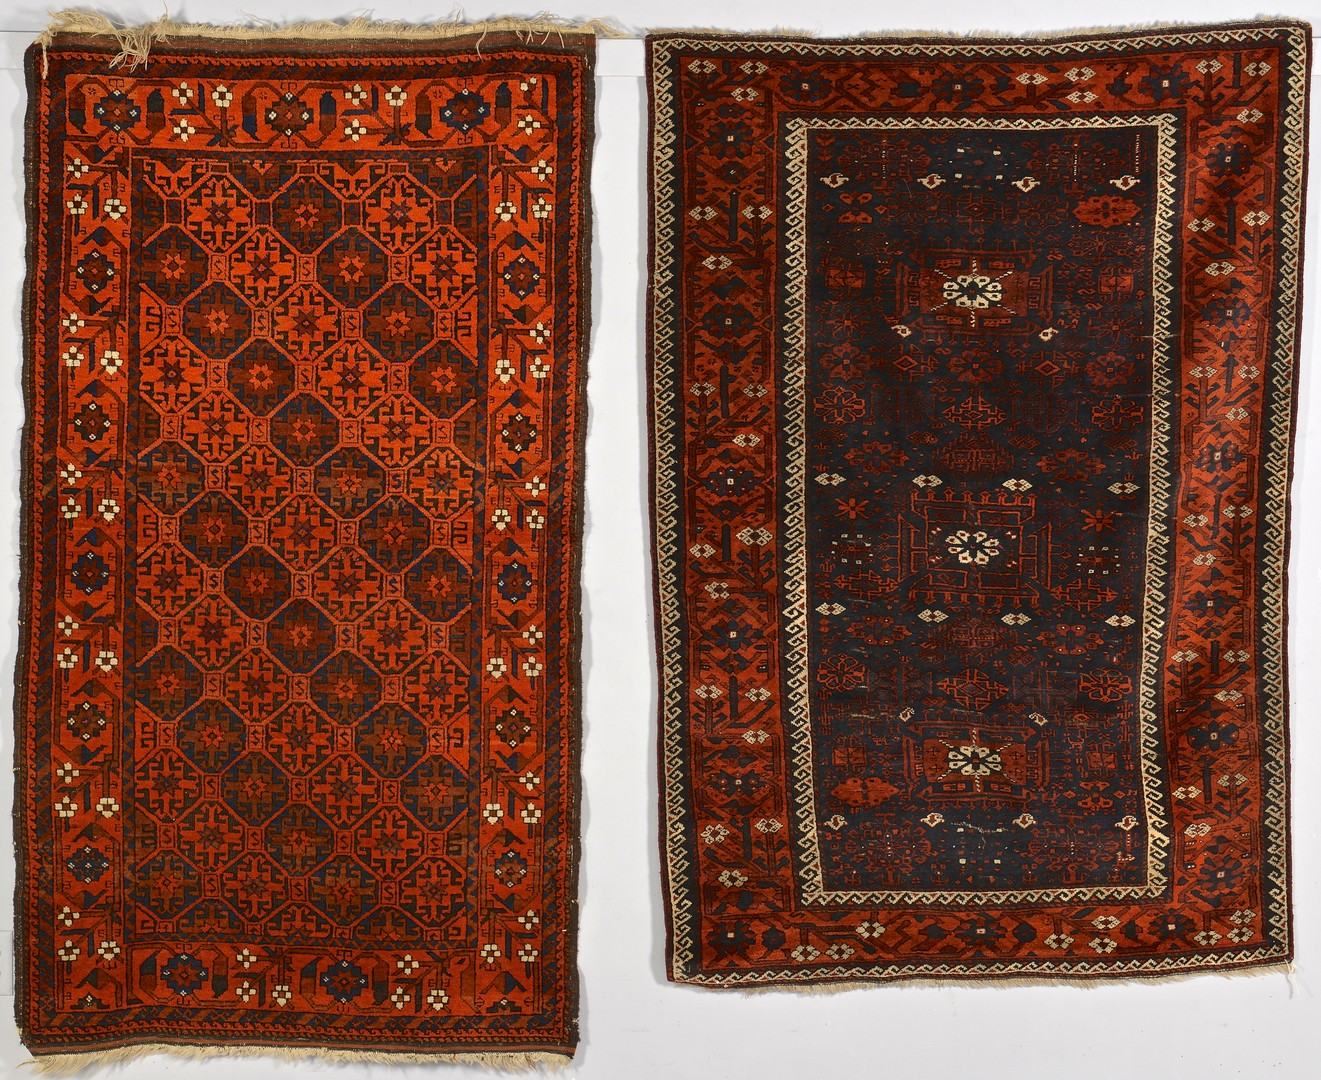 Lot 257: 2 Baluchi area Rugs, 1st half 20th c.